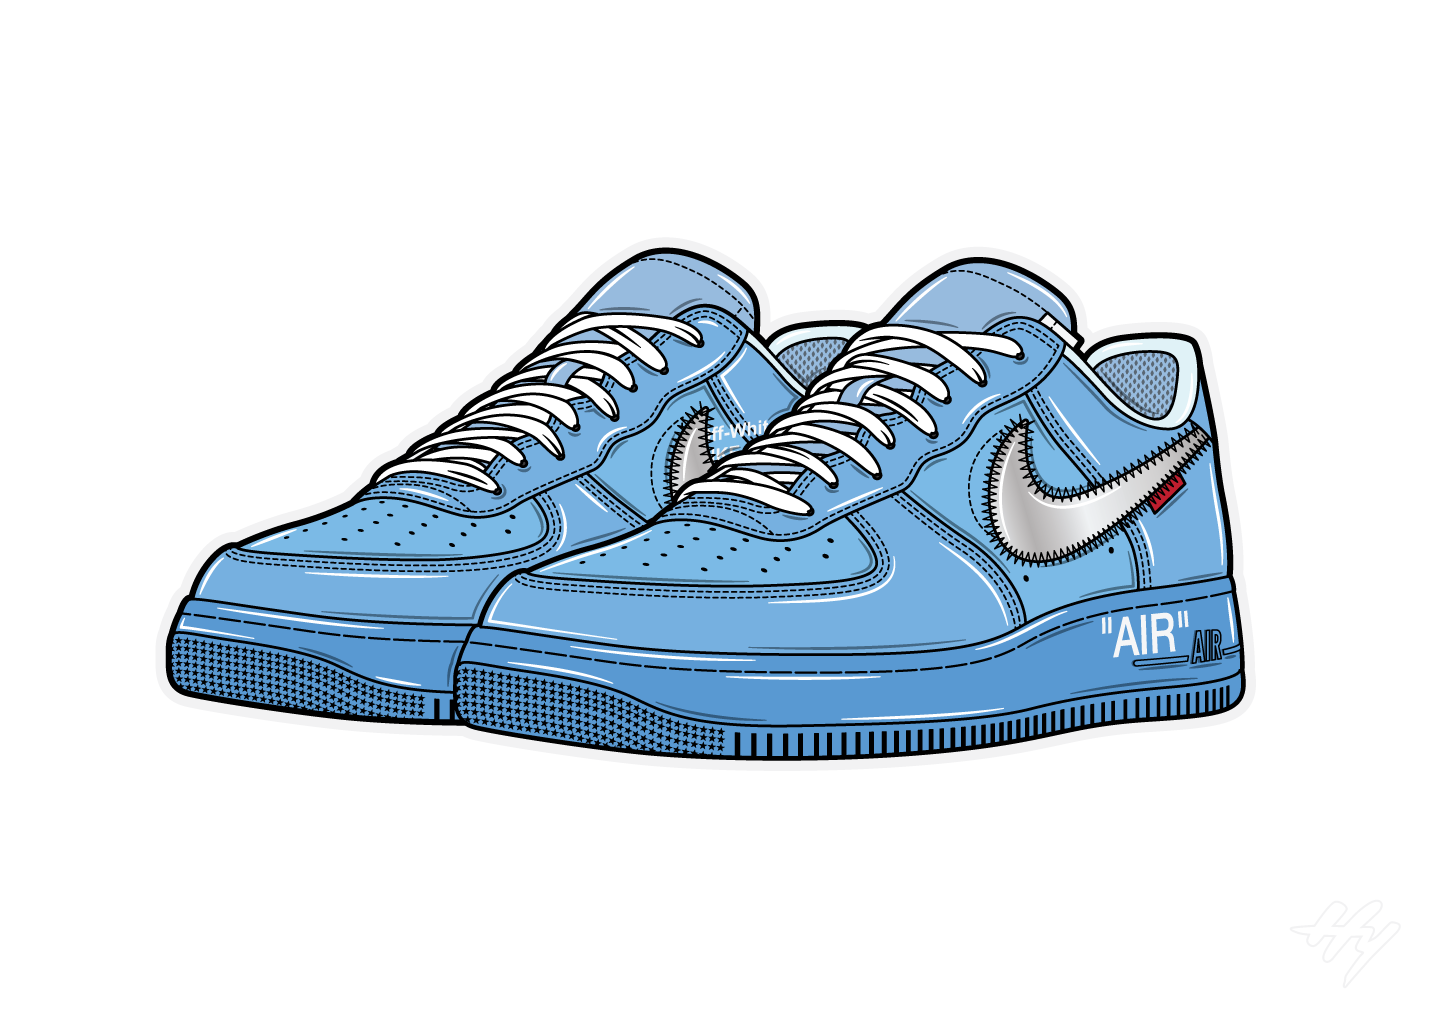 Hyprints sneaker art off-white nike air force 1 MCA